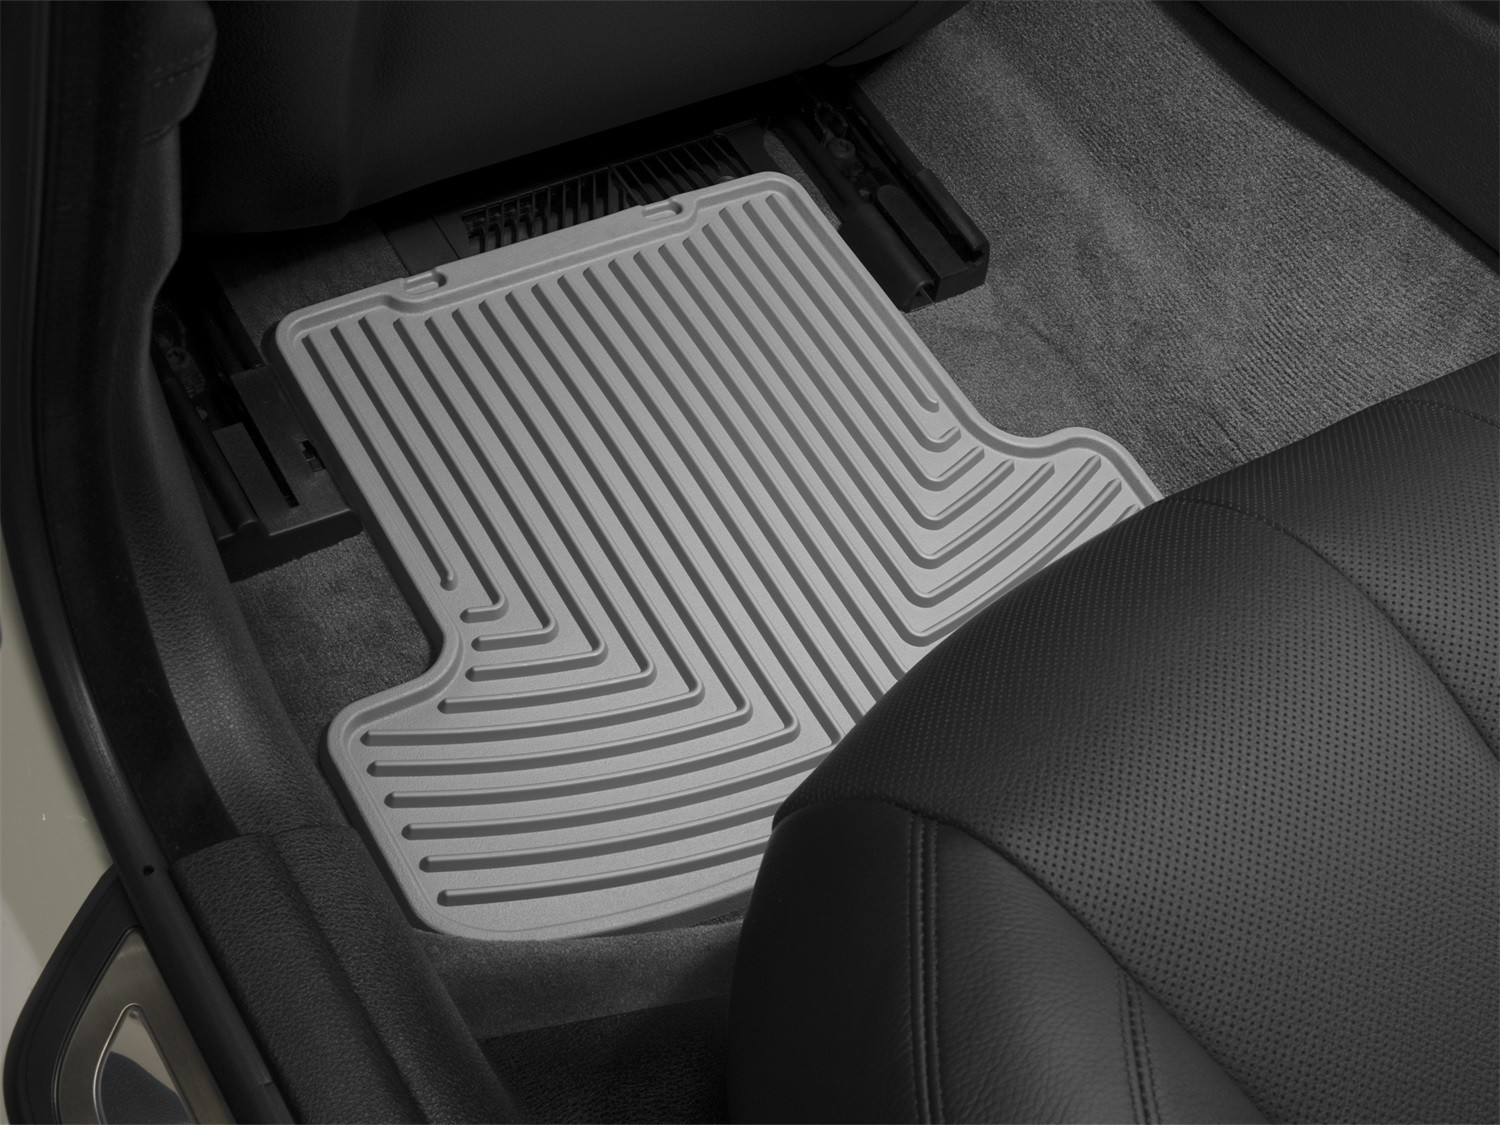 Weathertech floor mats alternative - Weathertech Floor Mats Alternative 4